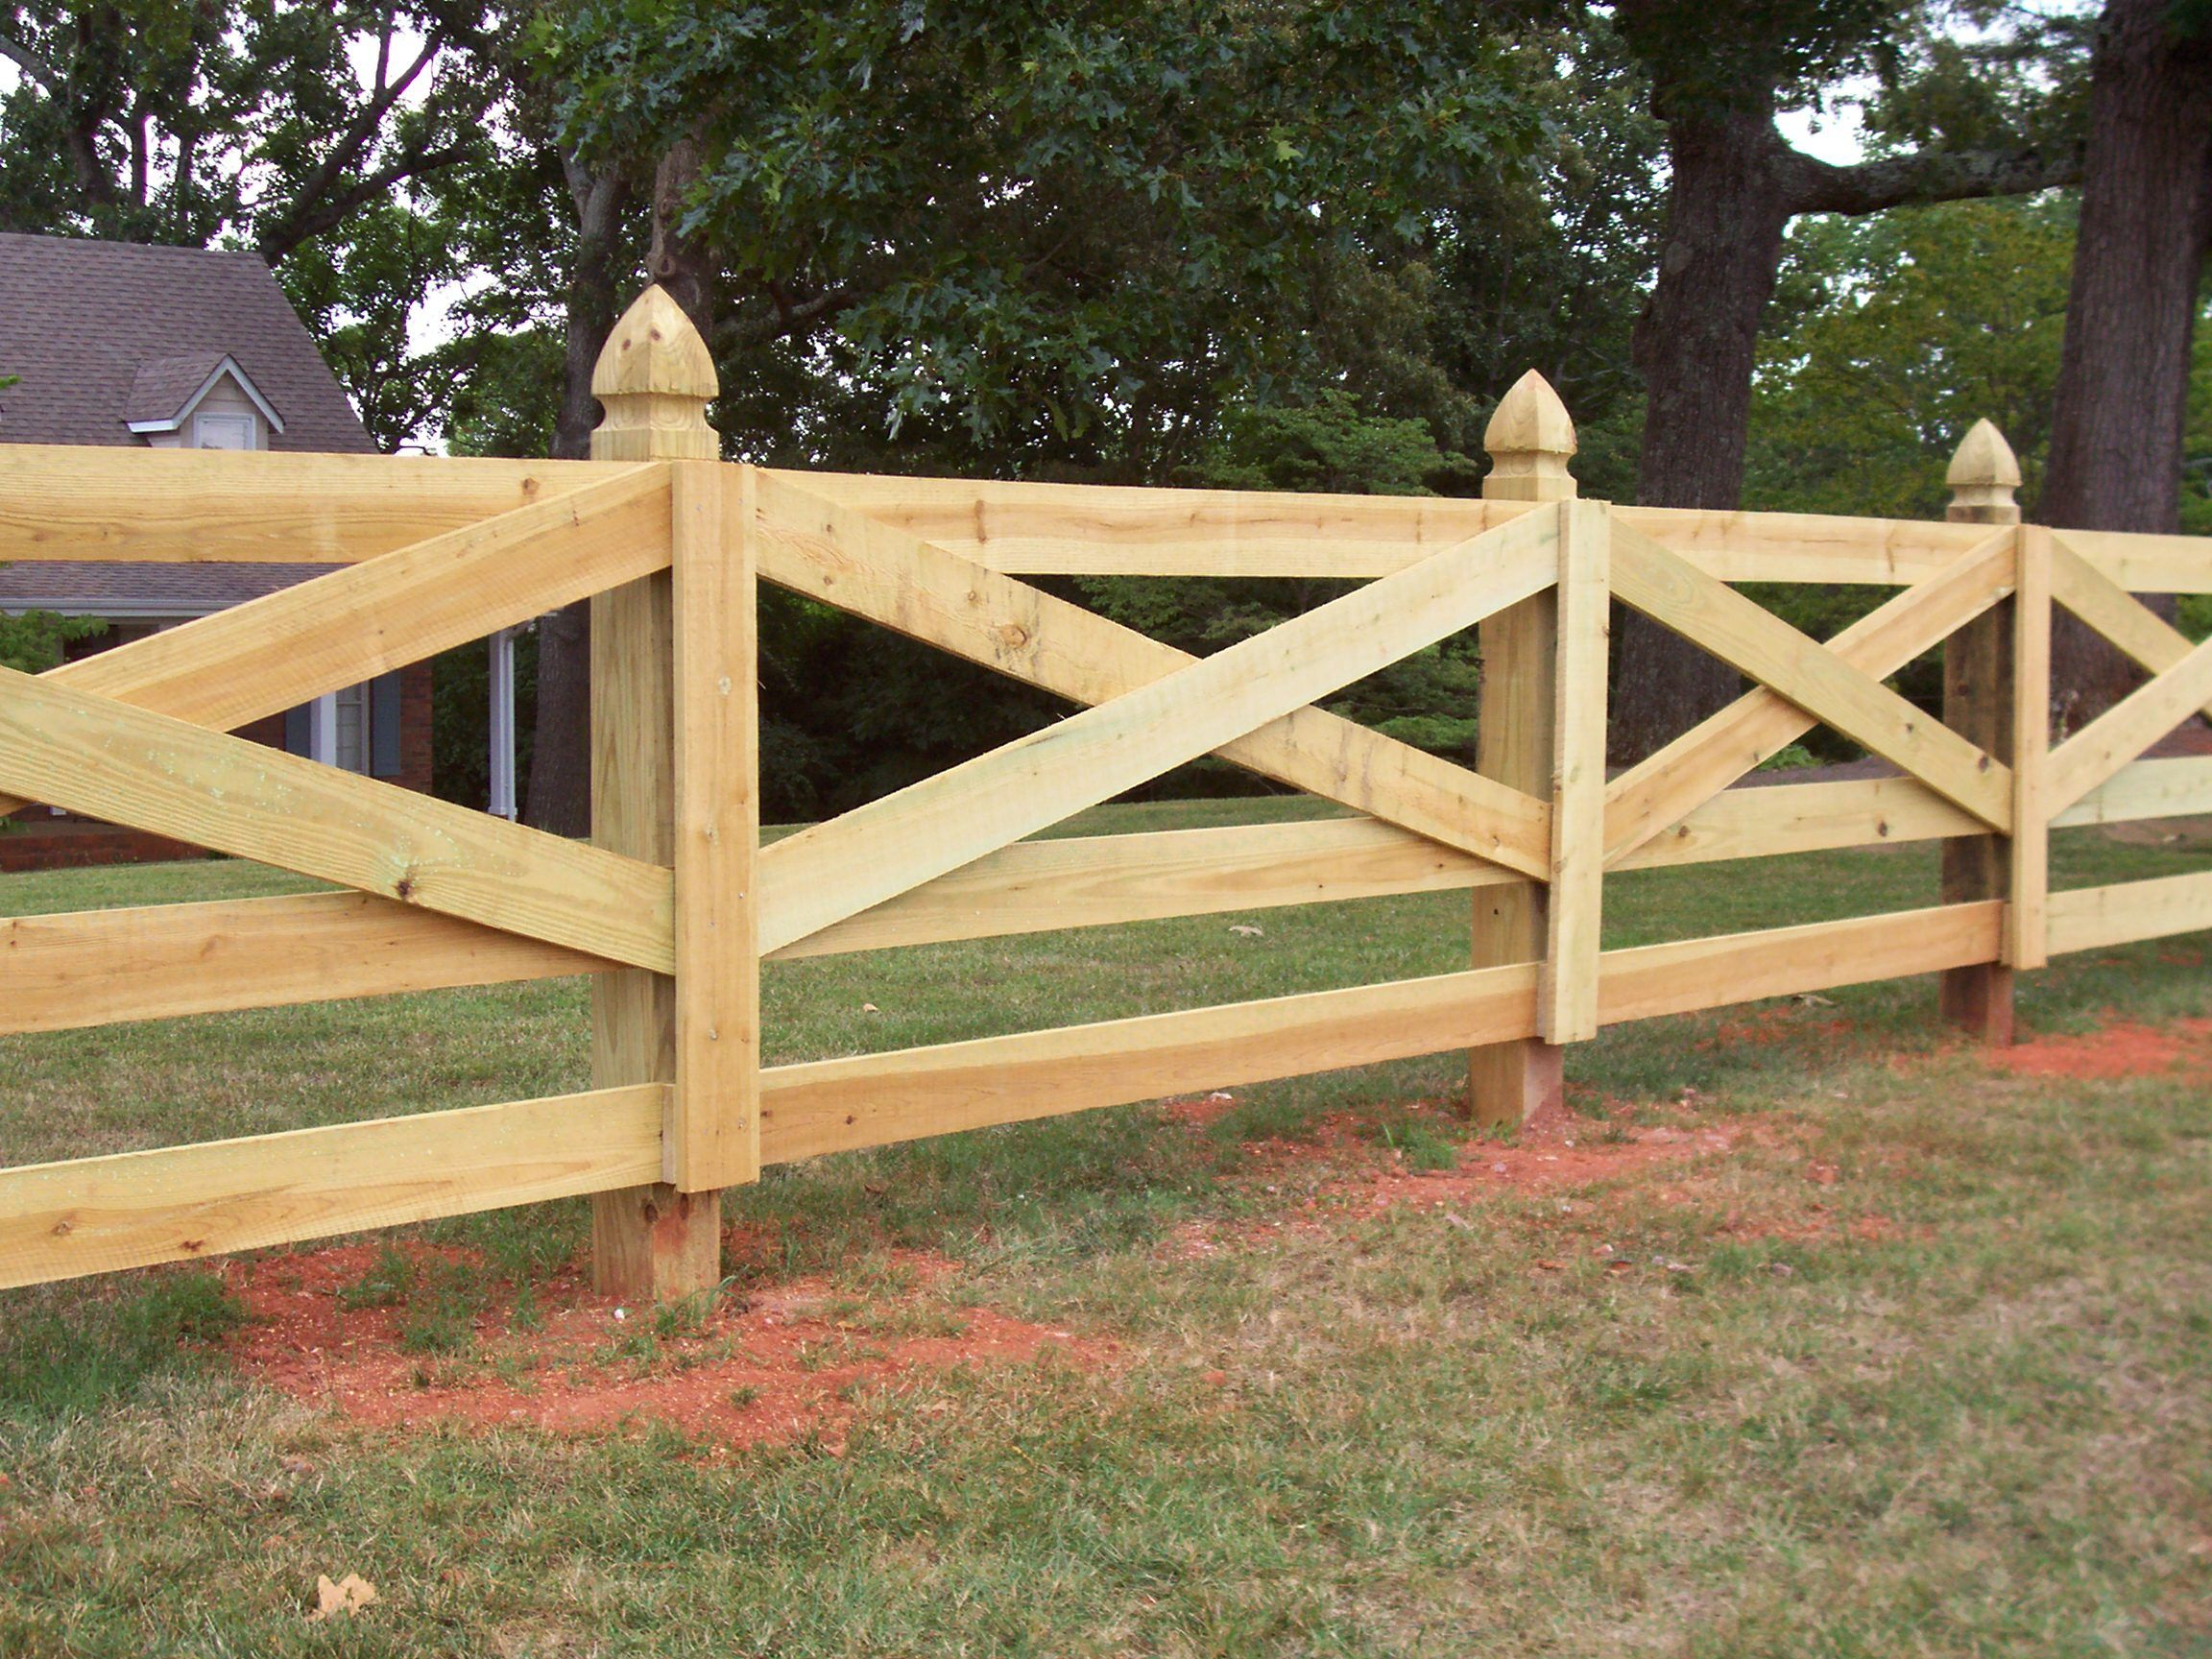 17 best ideas about fence styles on pinterest fence ideas yard fencing and cattle panel fence